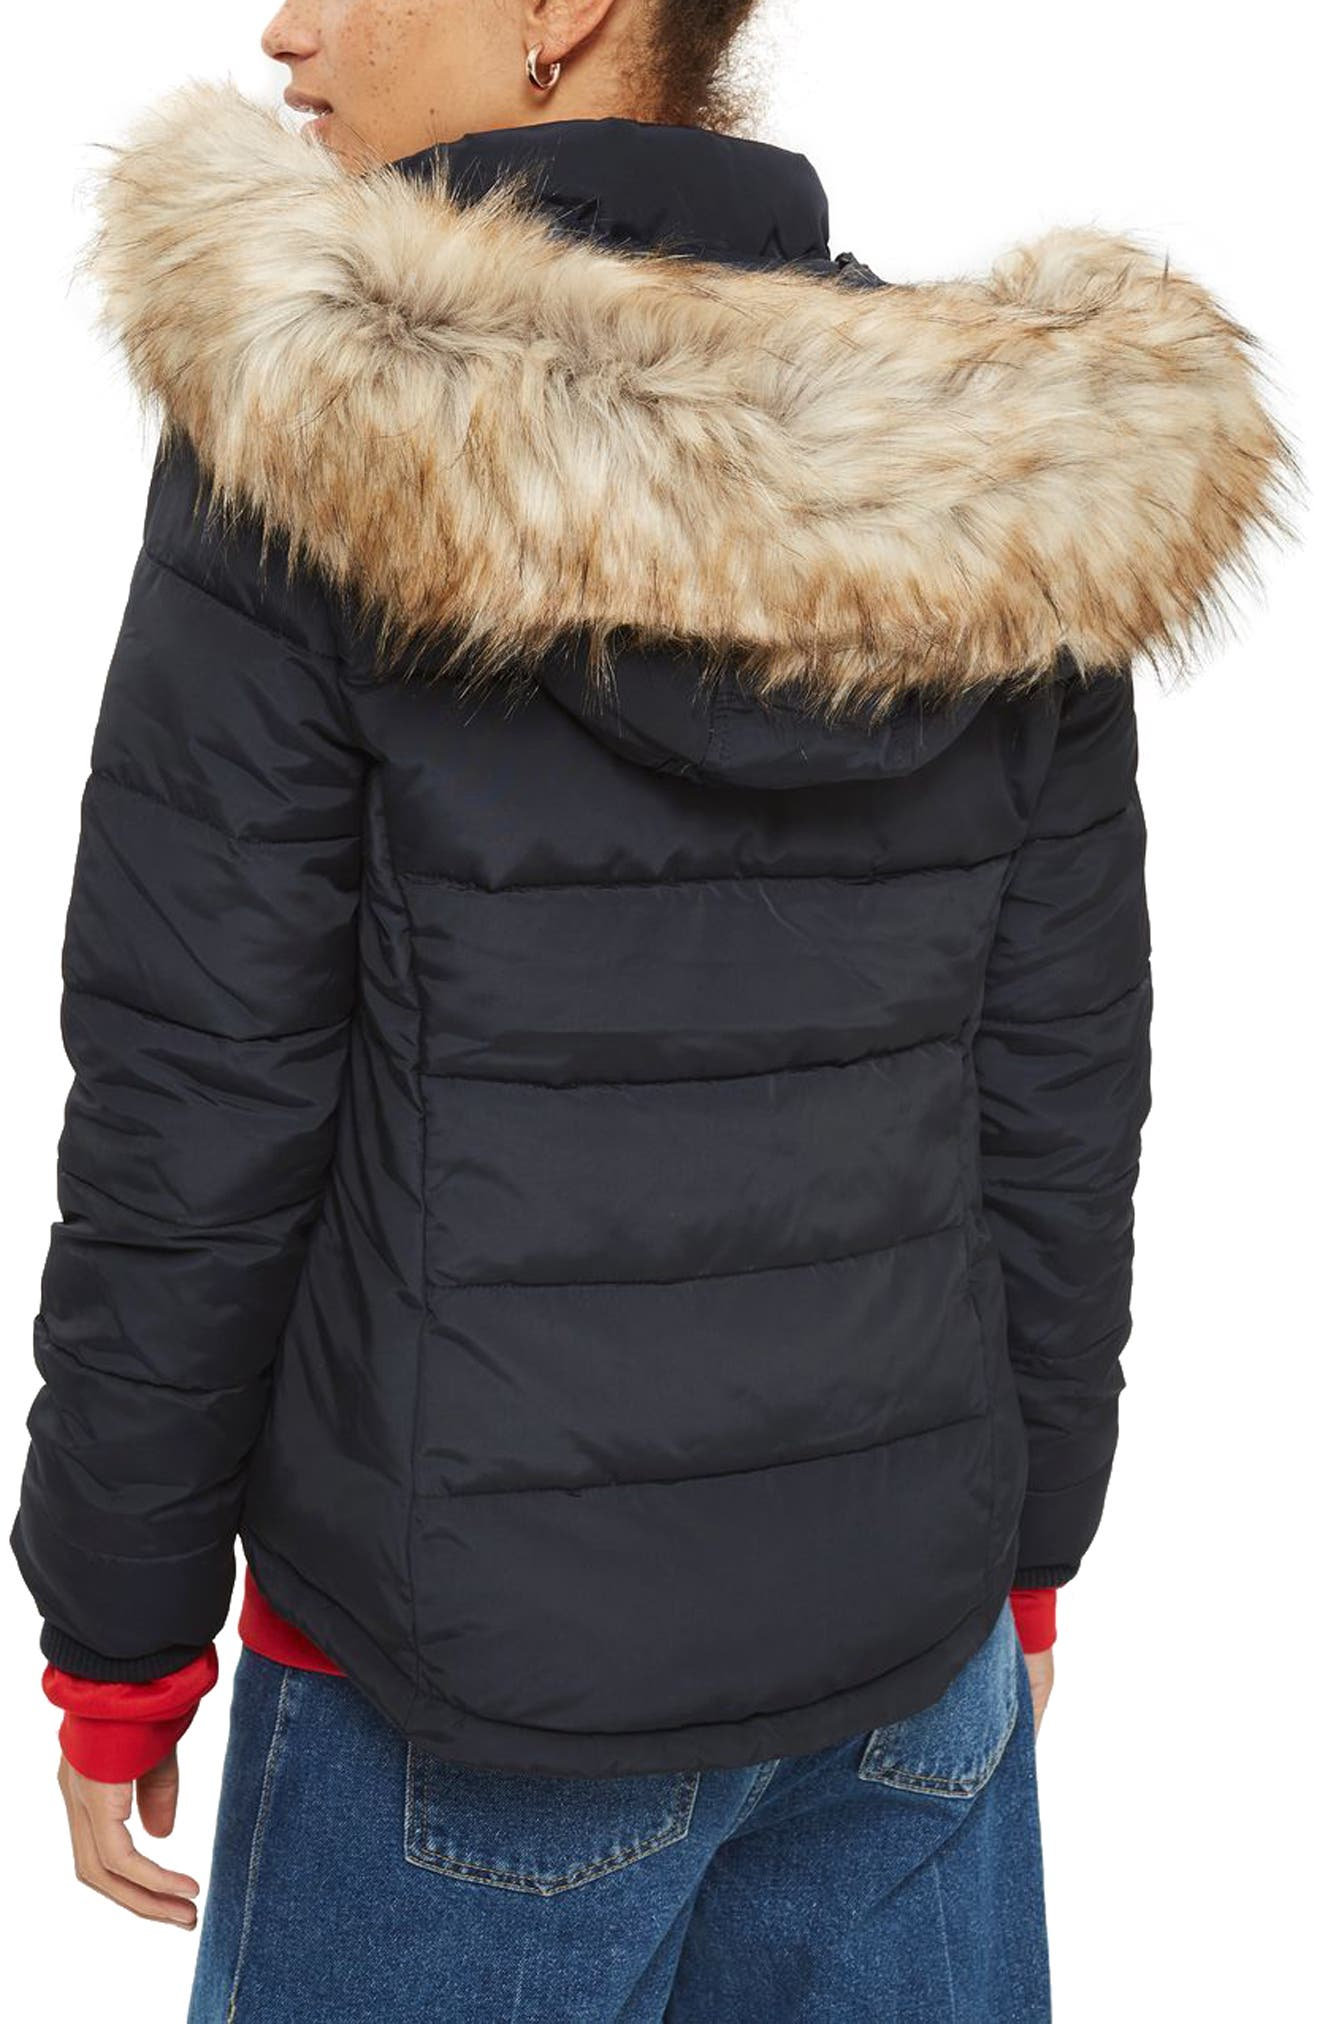 Nancy Quilted Puffer Jacket with Faux Fur Trim,                             Alternate thumbnail 2, color,                             410